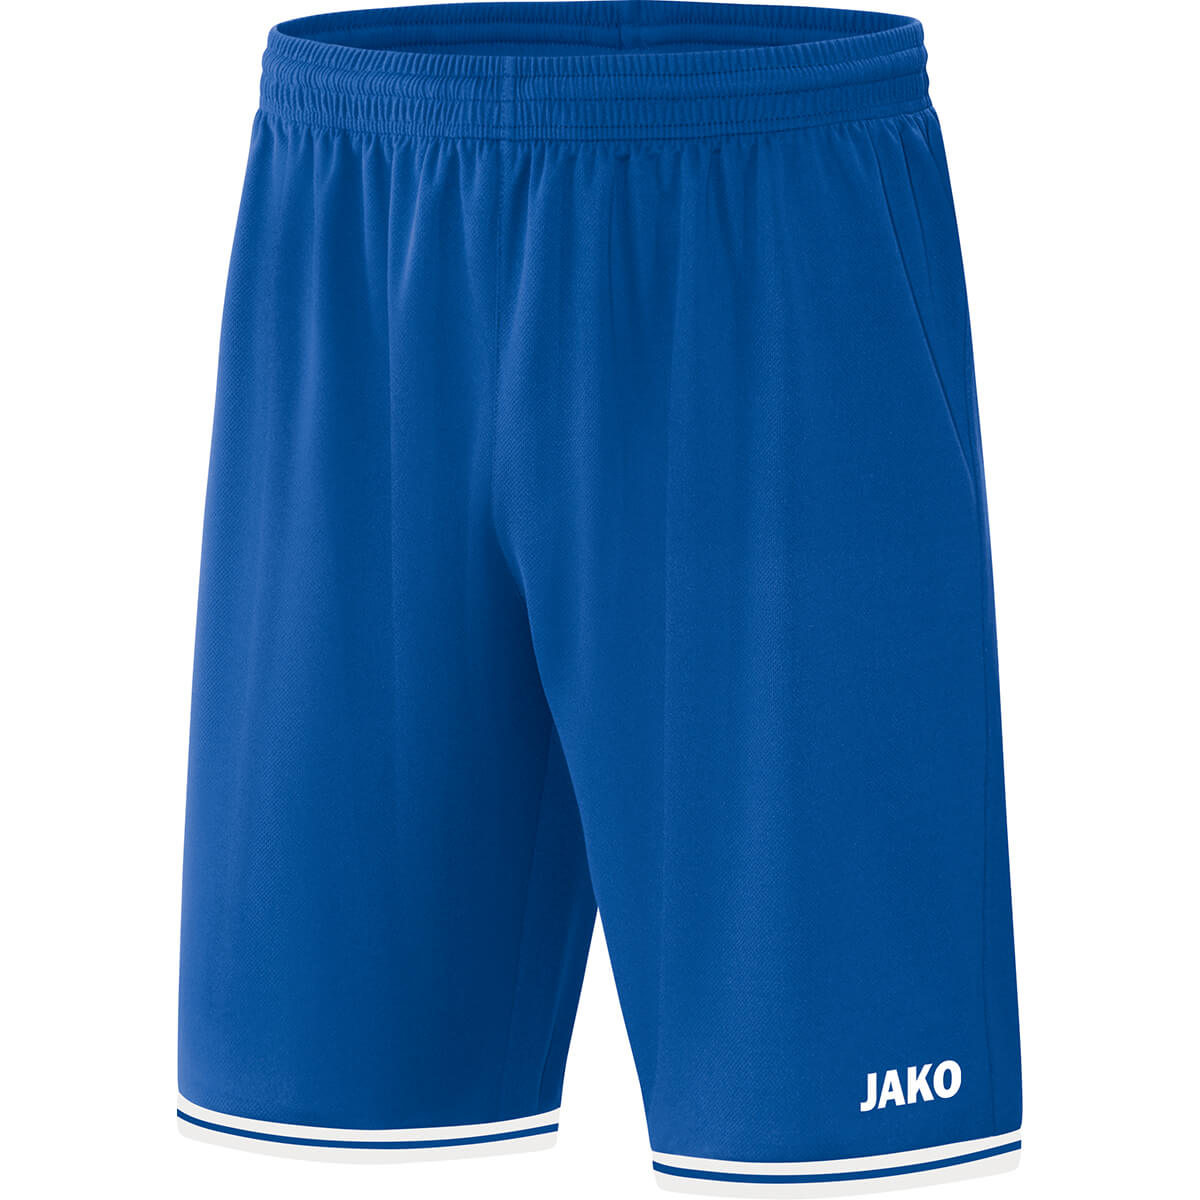 Short Center 2.0 - Herren | Jako 4450